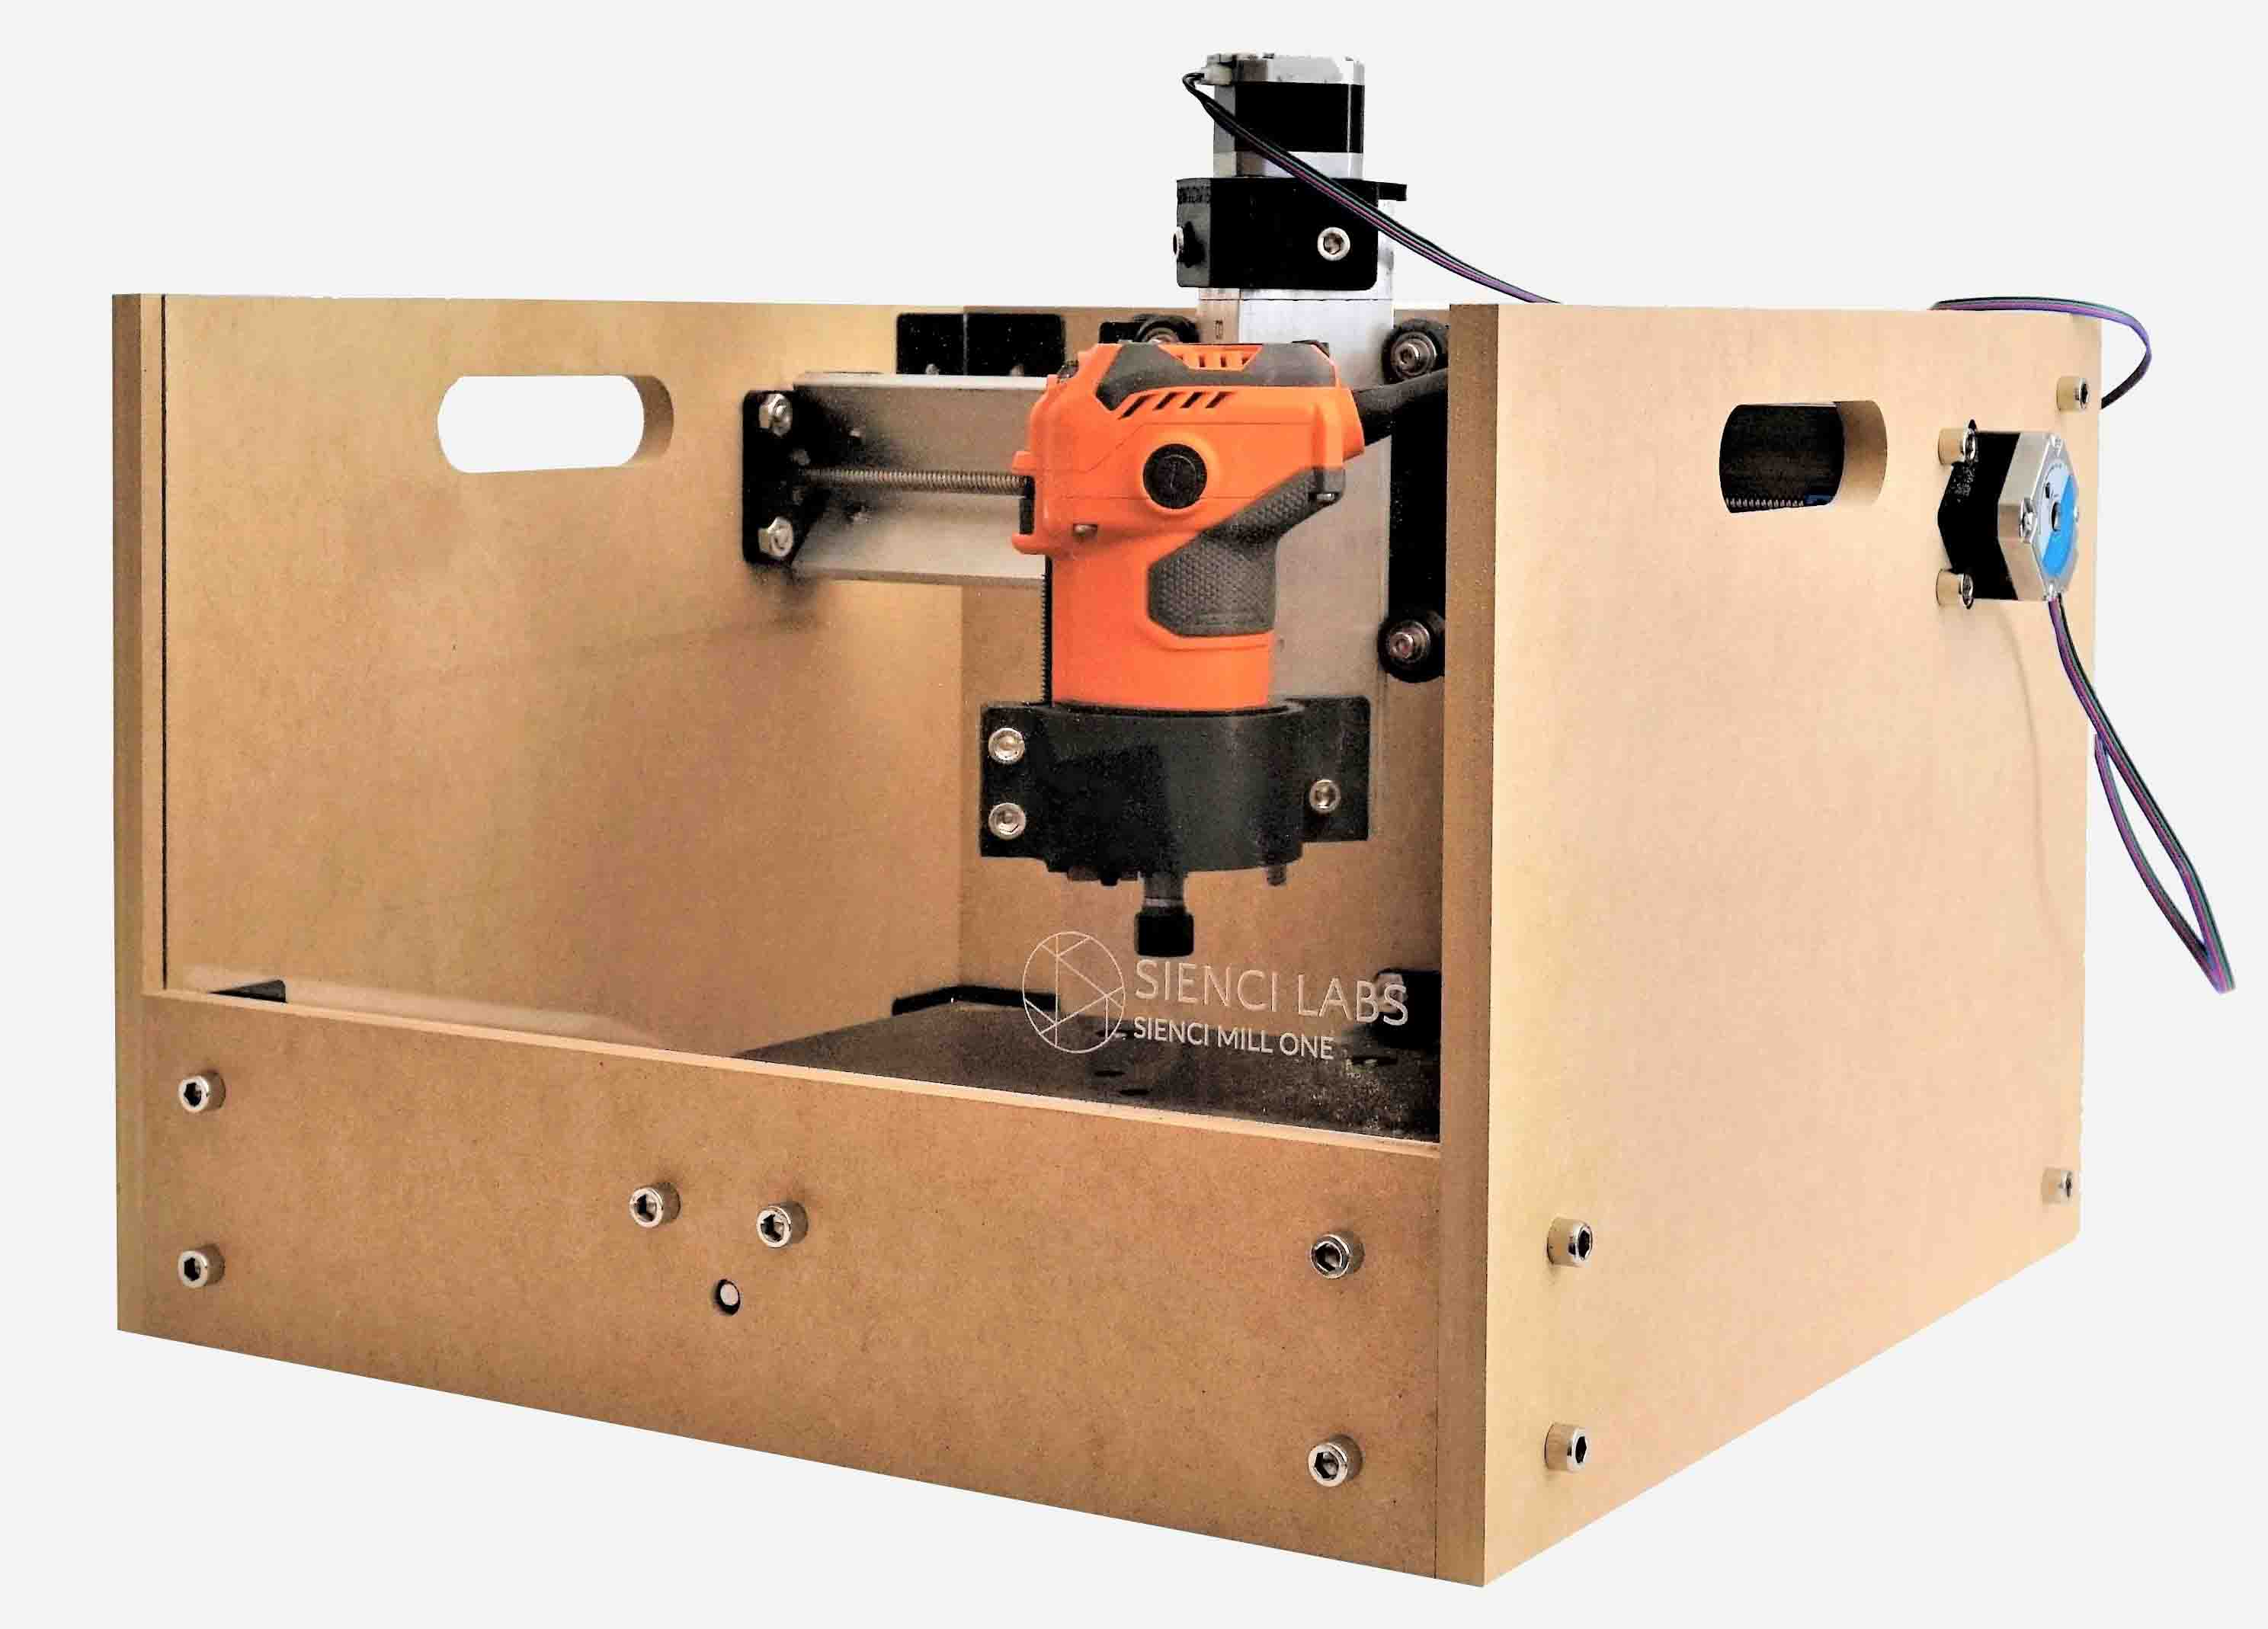 Sienci Labs - Simple and Affordable Desktop CNC Milling